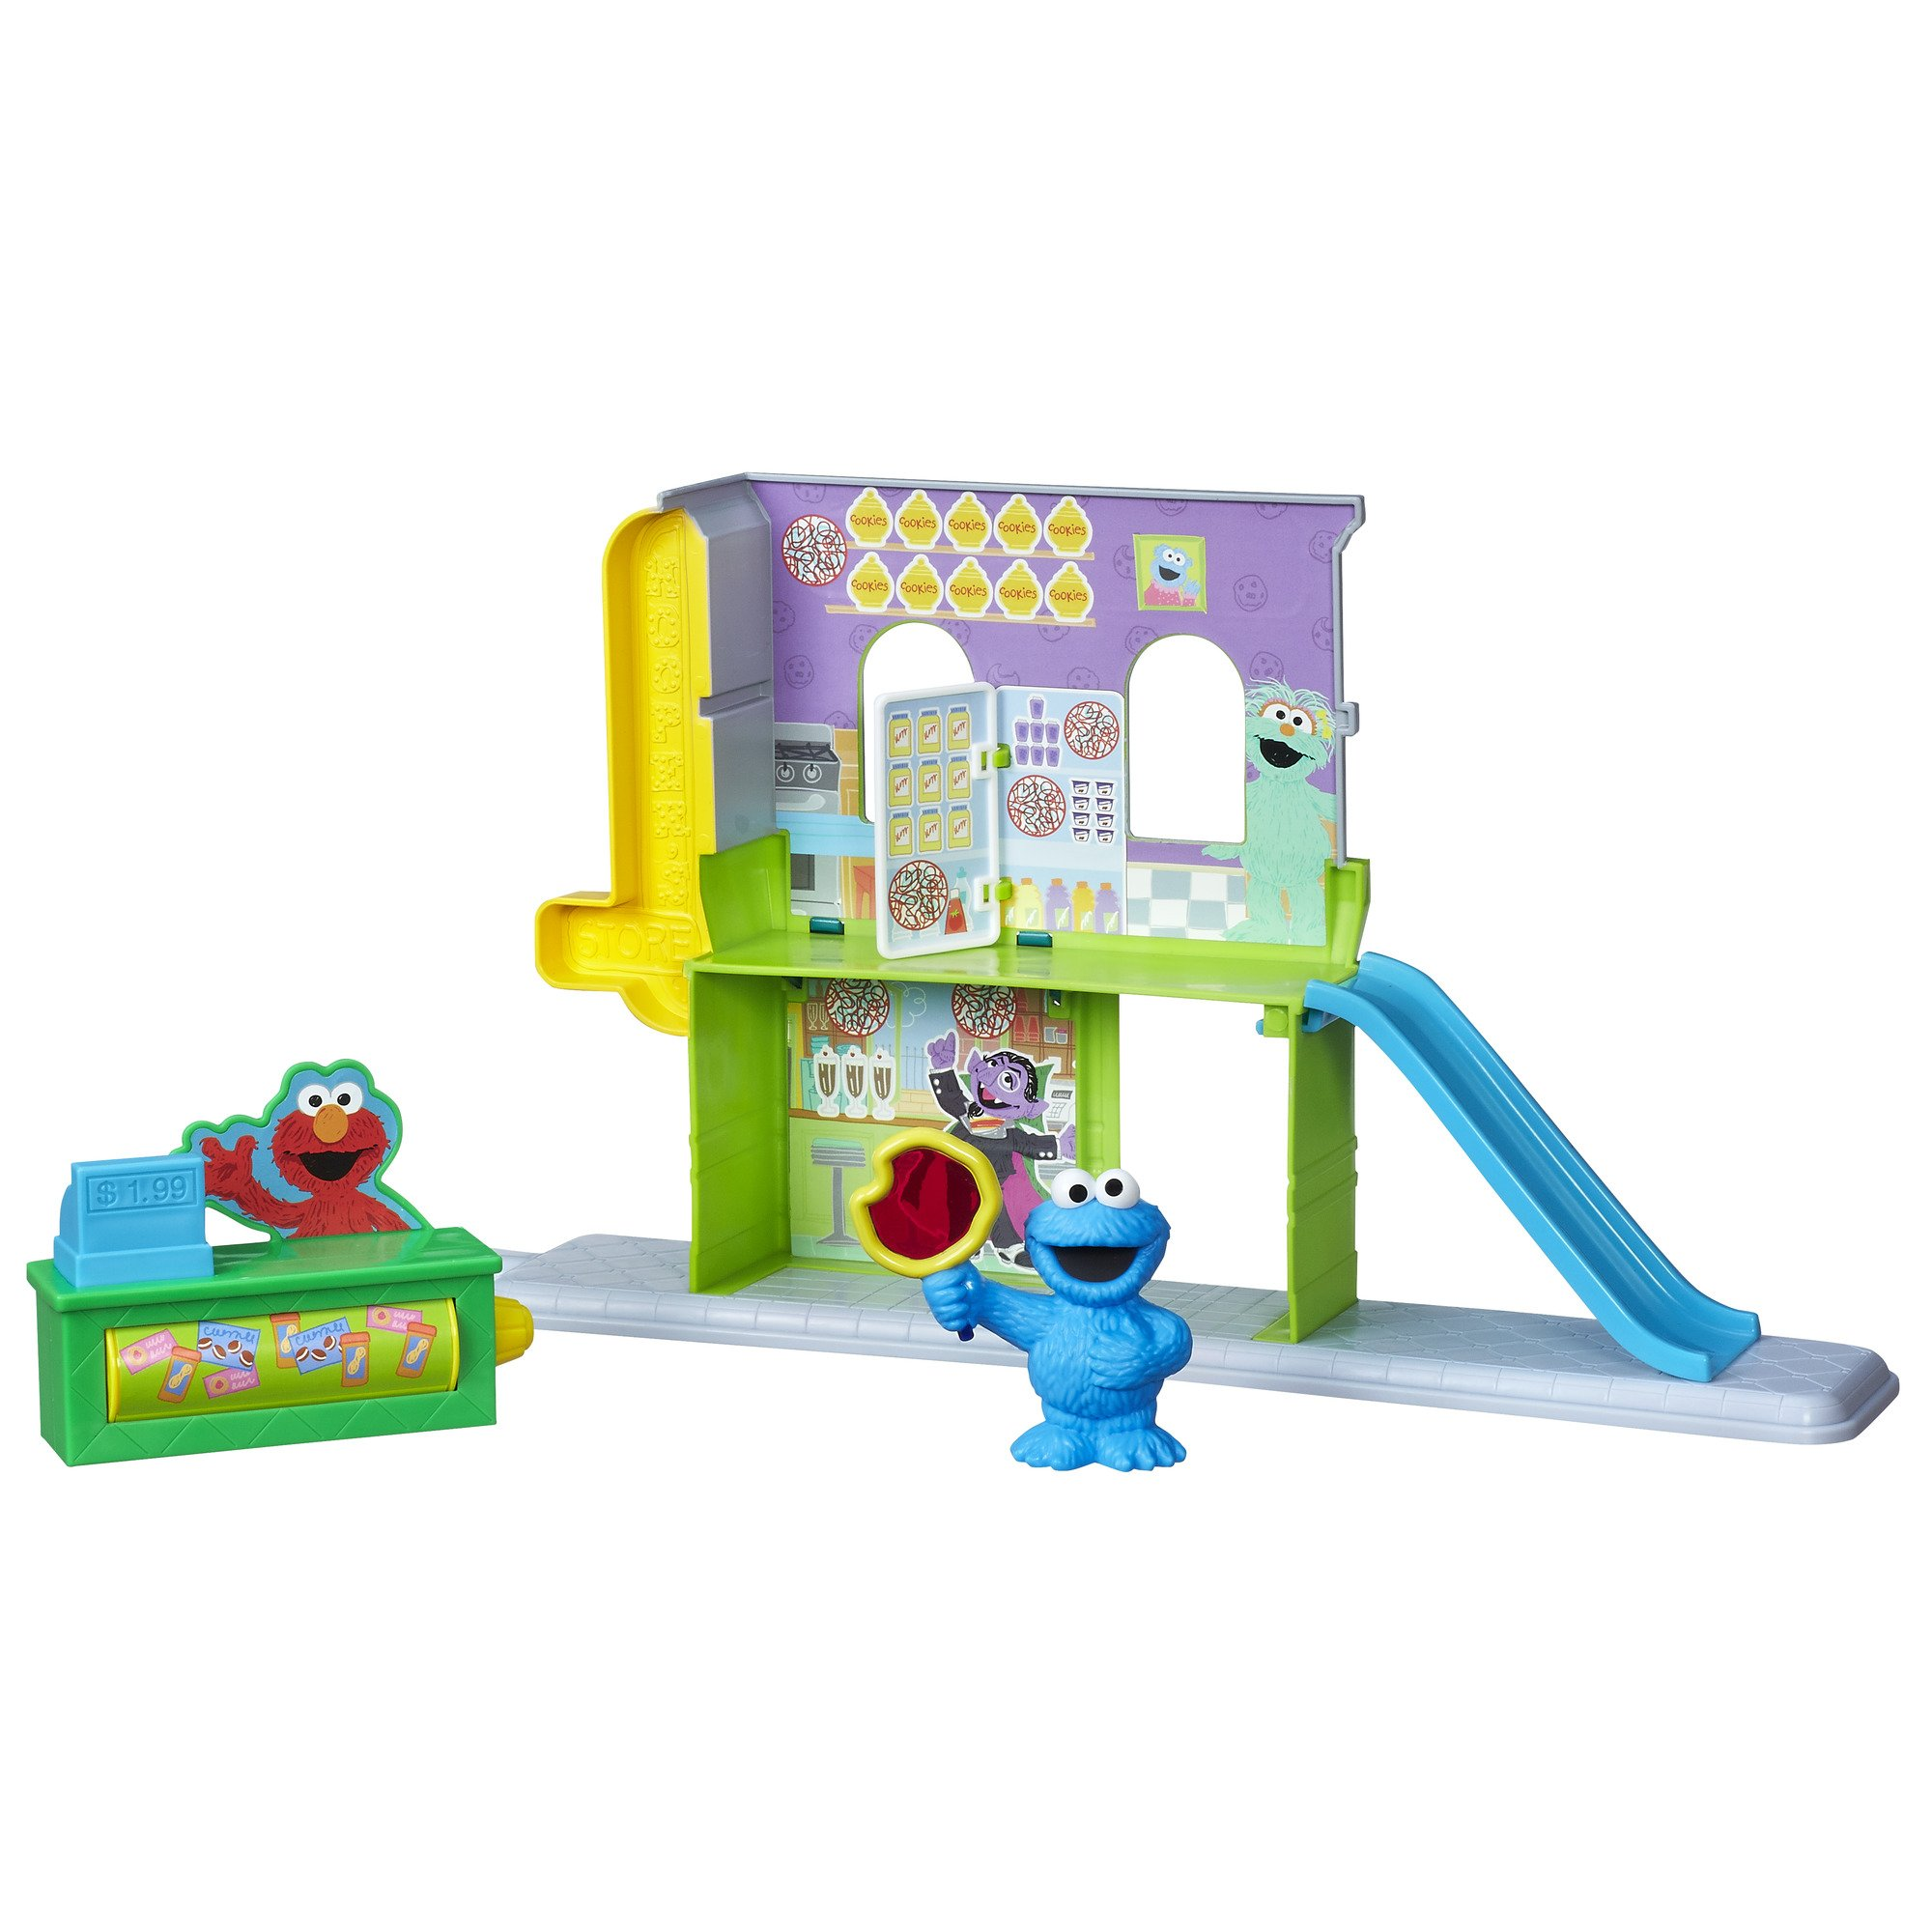 Buy Sesame Street The Furchester Hotel Playset With Figures in Cheap ...